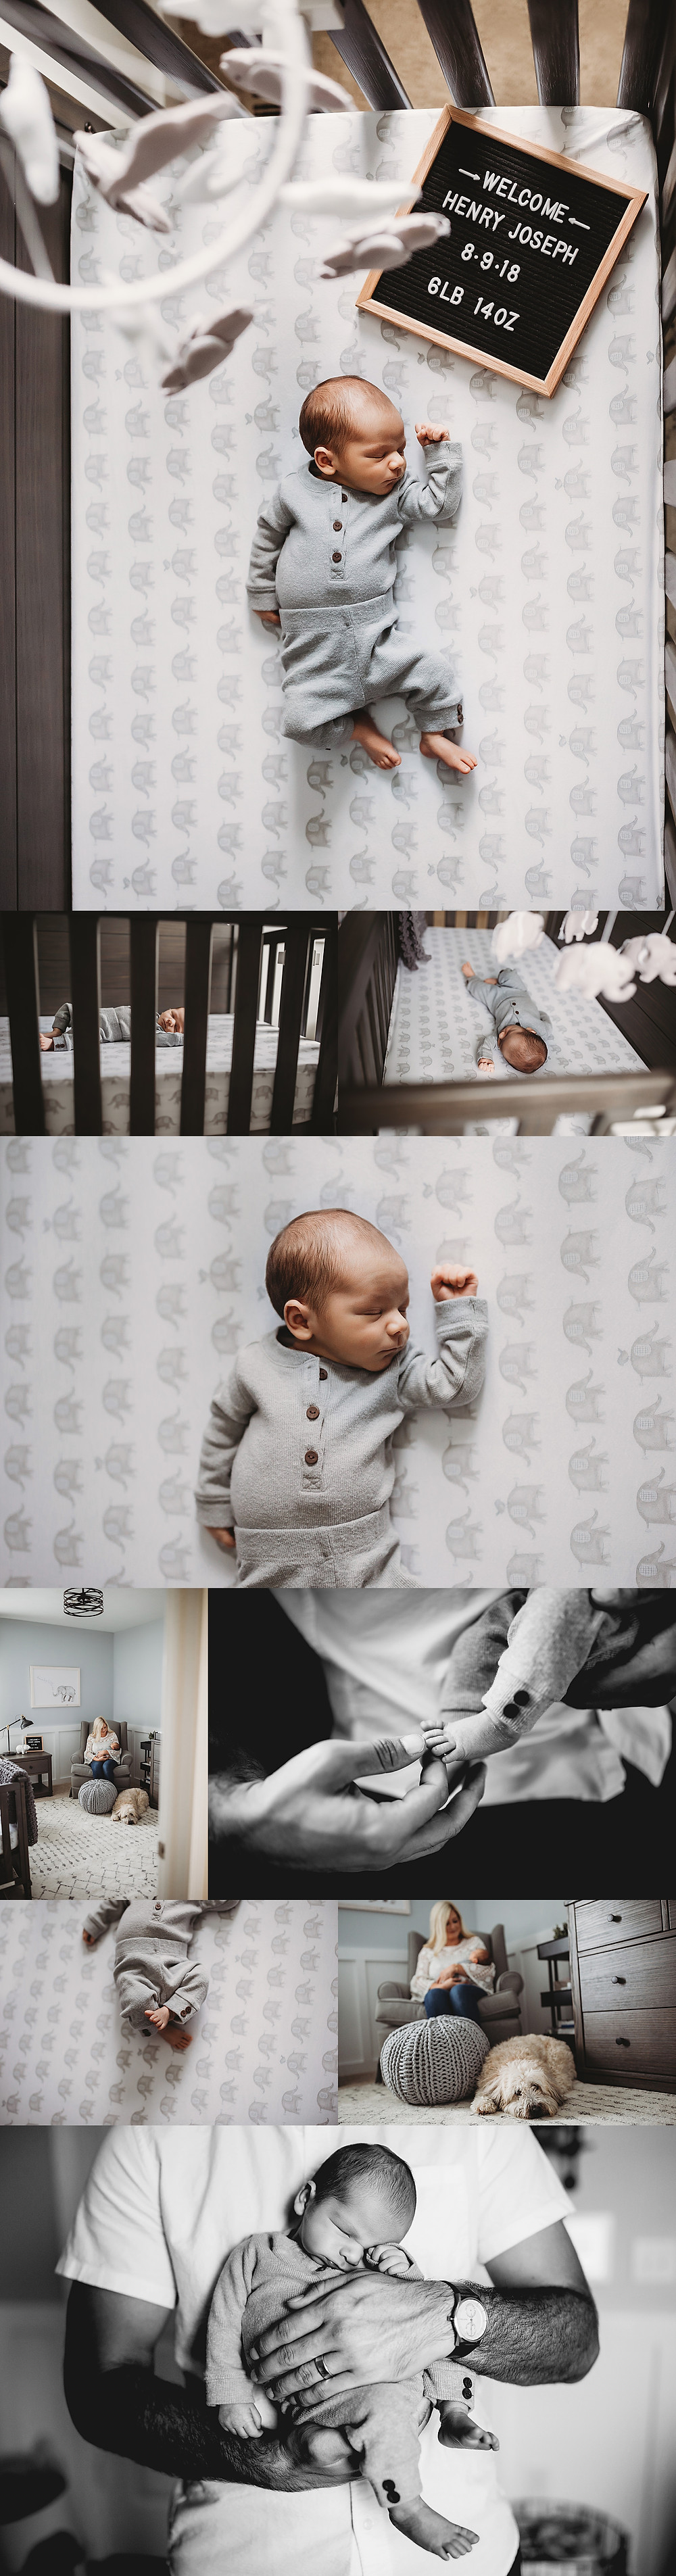 Indianapolis Indiana Newborn Lifetsyle Photographer, Alex Morris Design